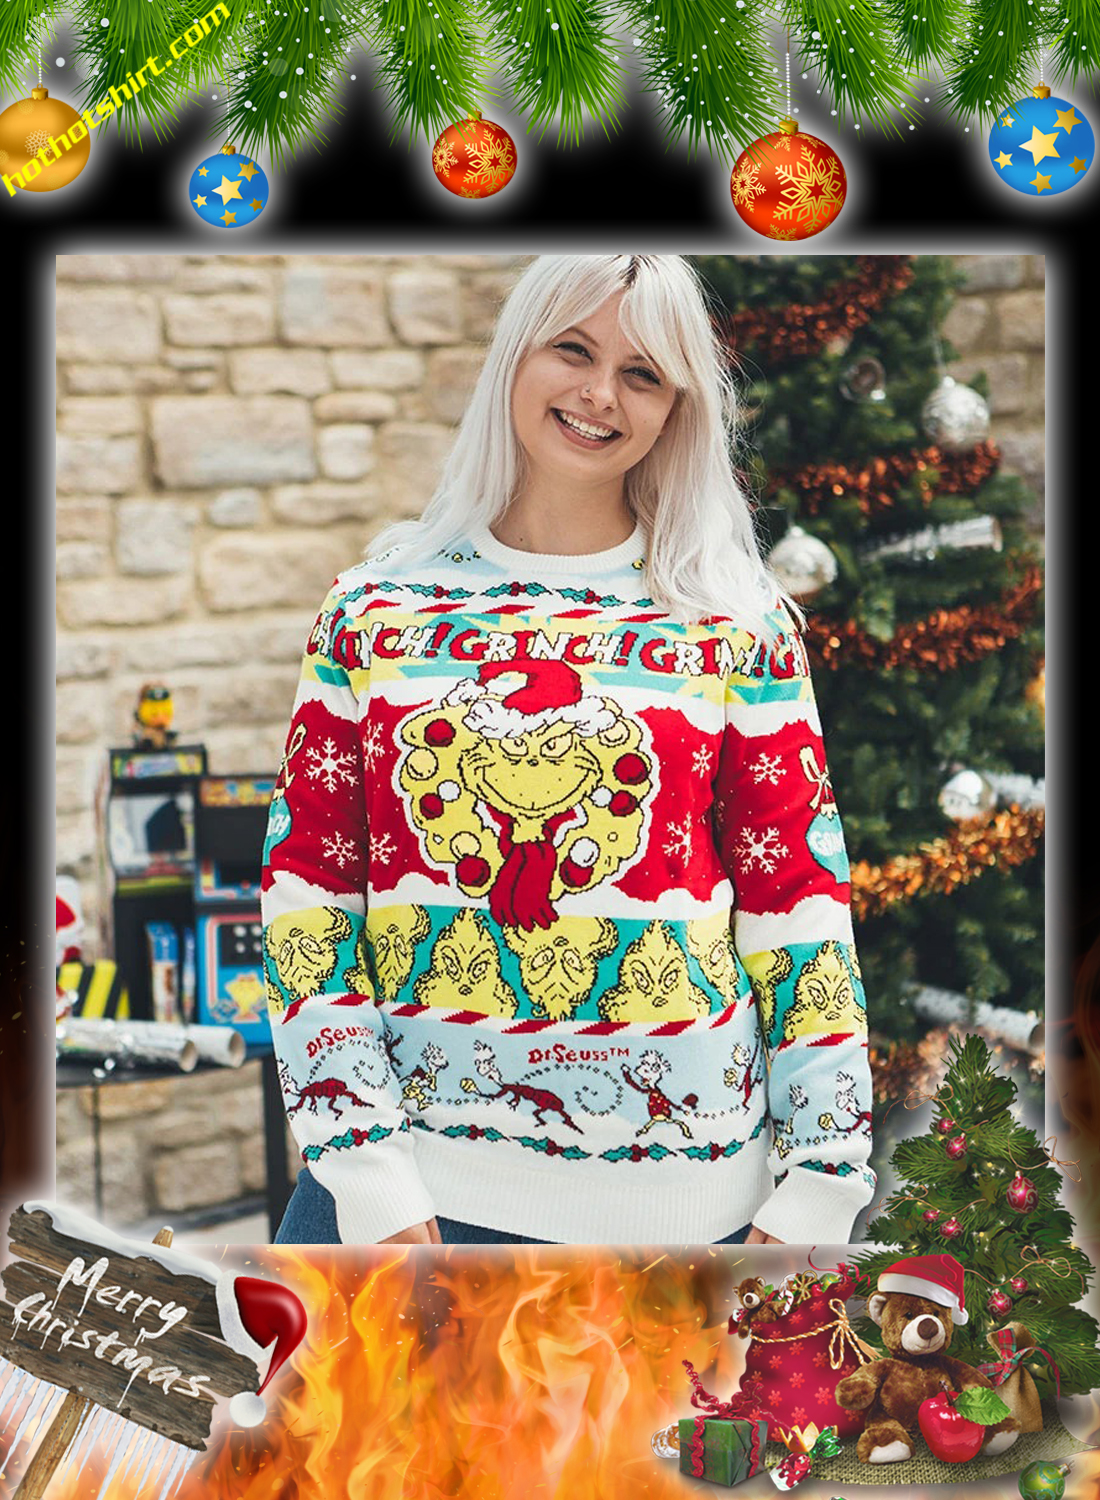 The grinch christmas jumper and ugly sweater 2